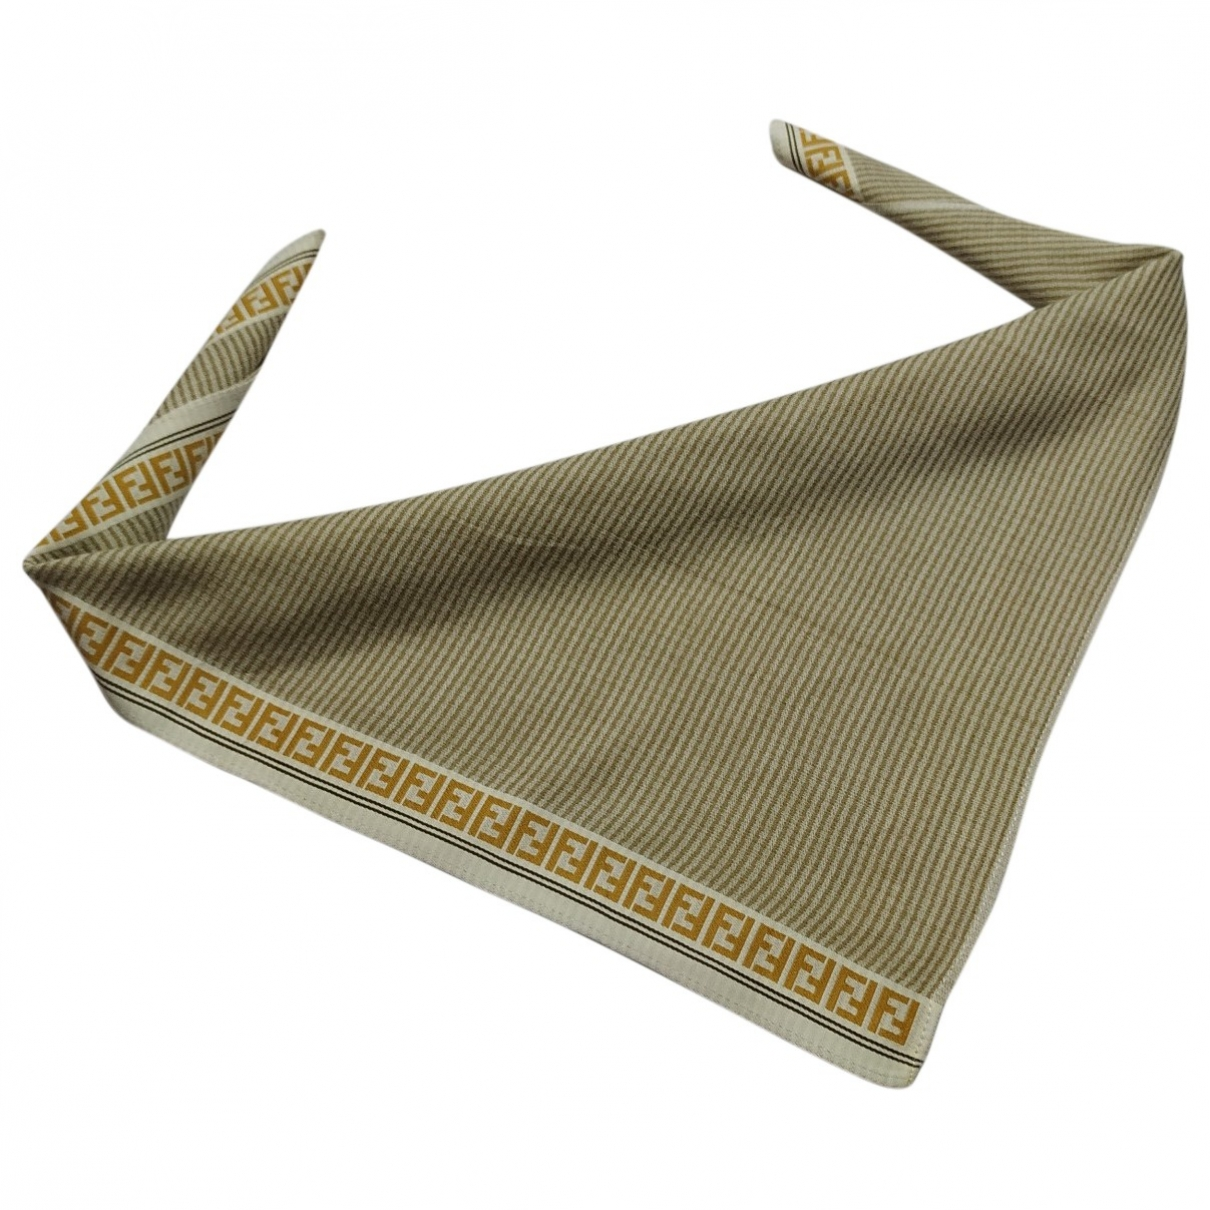 Fendi \N Beige Cotton Silk handkerchief for Women \N